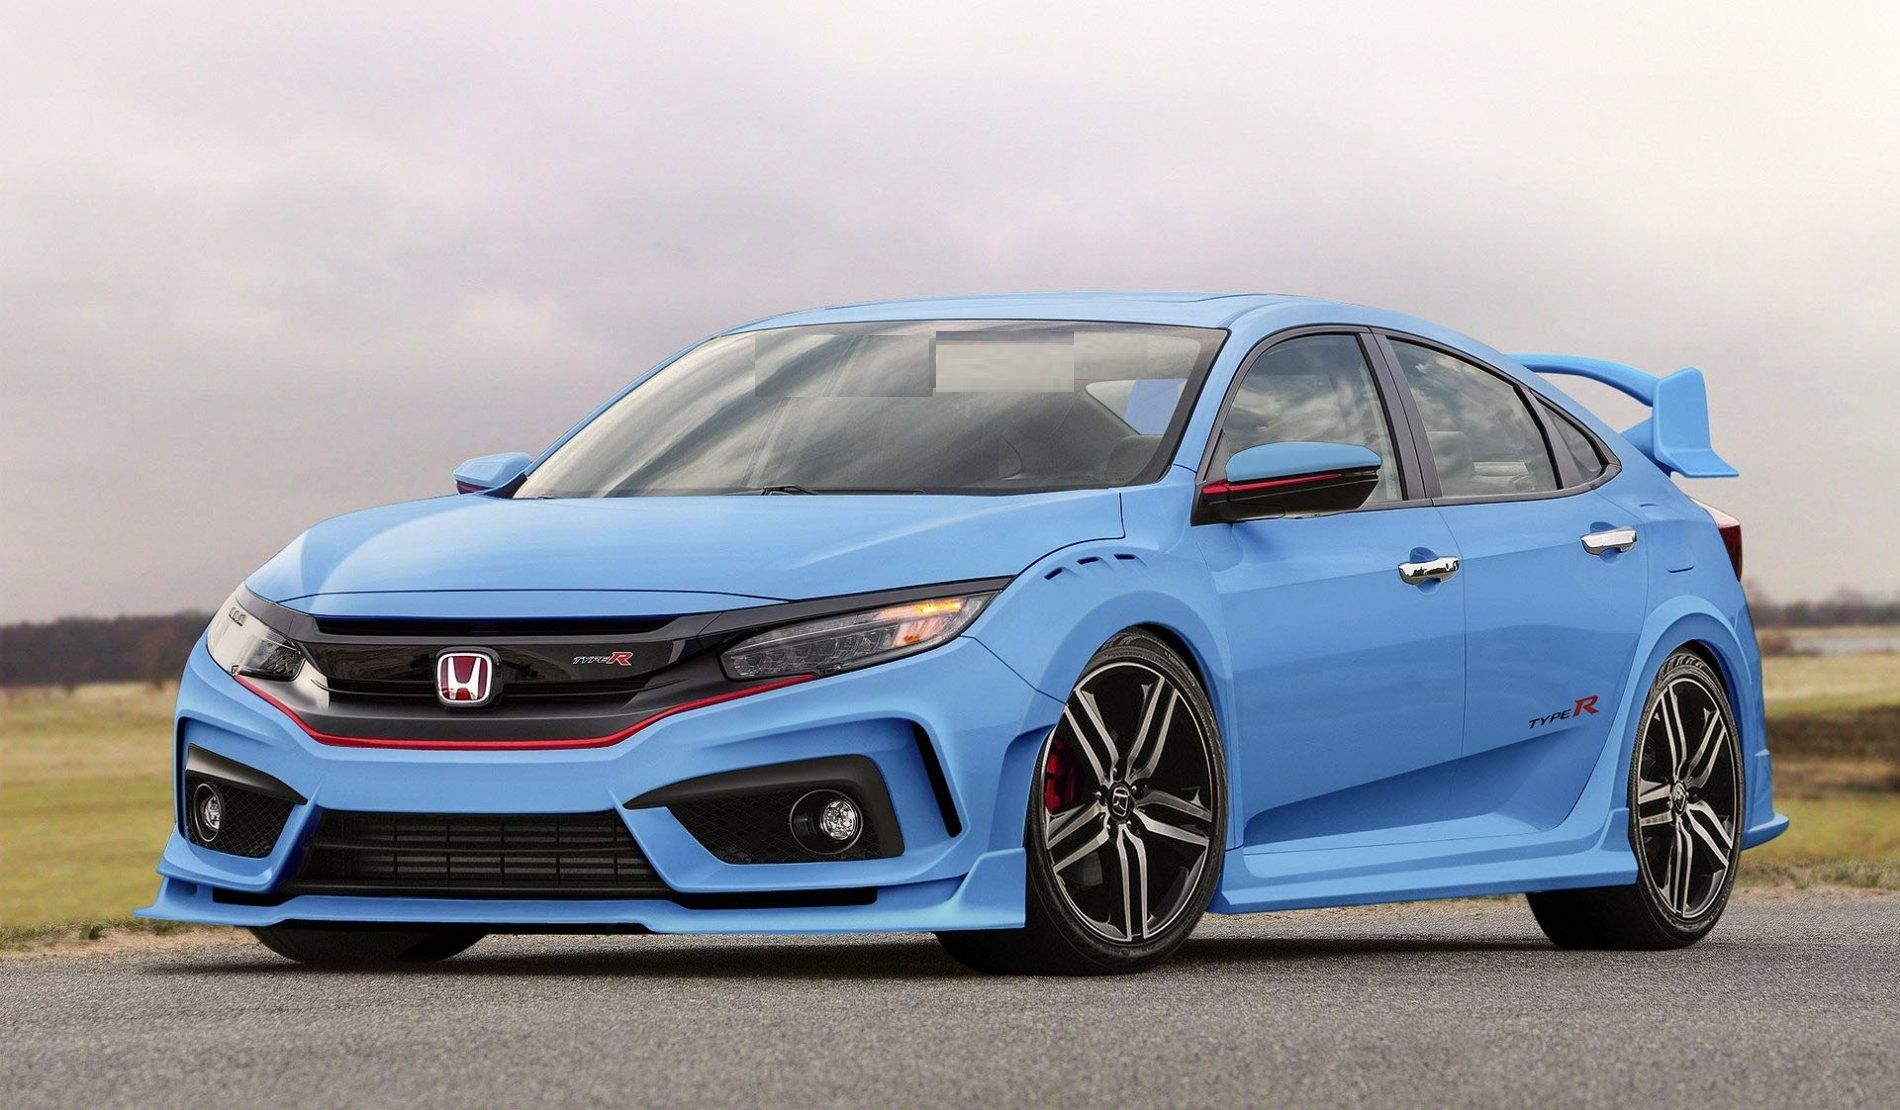 2018 HONDA CIVIC TYPE R SPECS Future Cars Pinterest